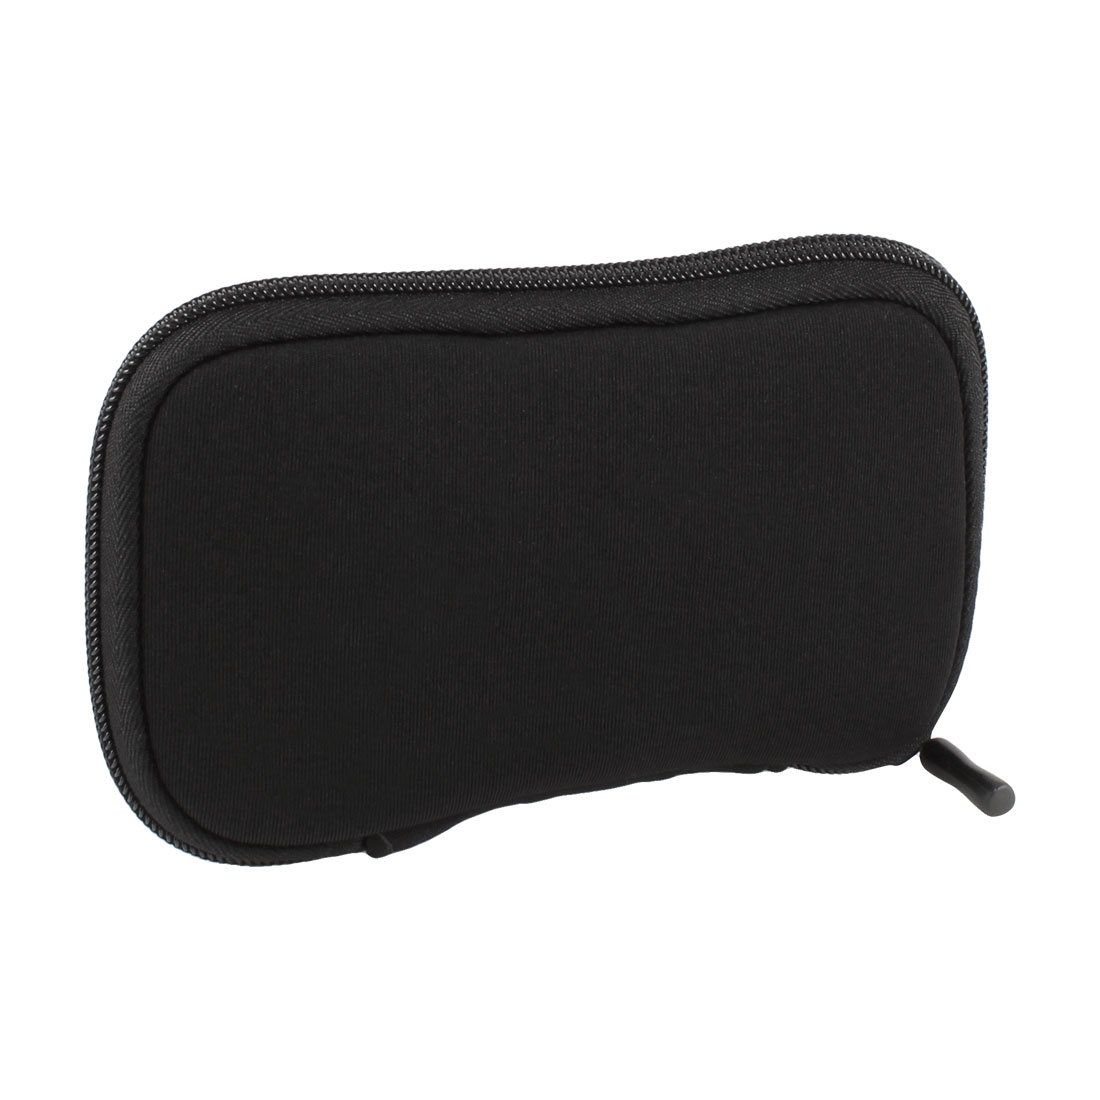 "Zip-up Neoprene Sleeve Bag Pouch Carry Case Black for 2.5"" HDD Hard Drive Disk"